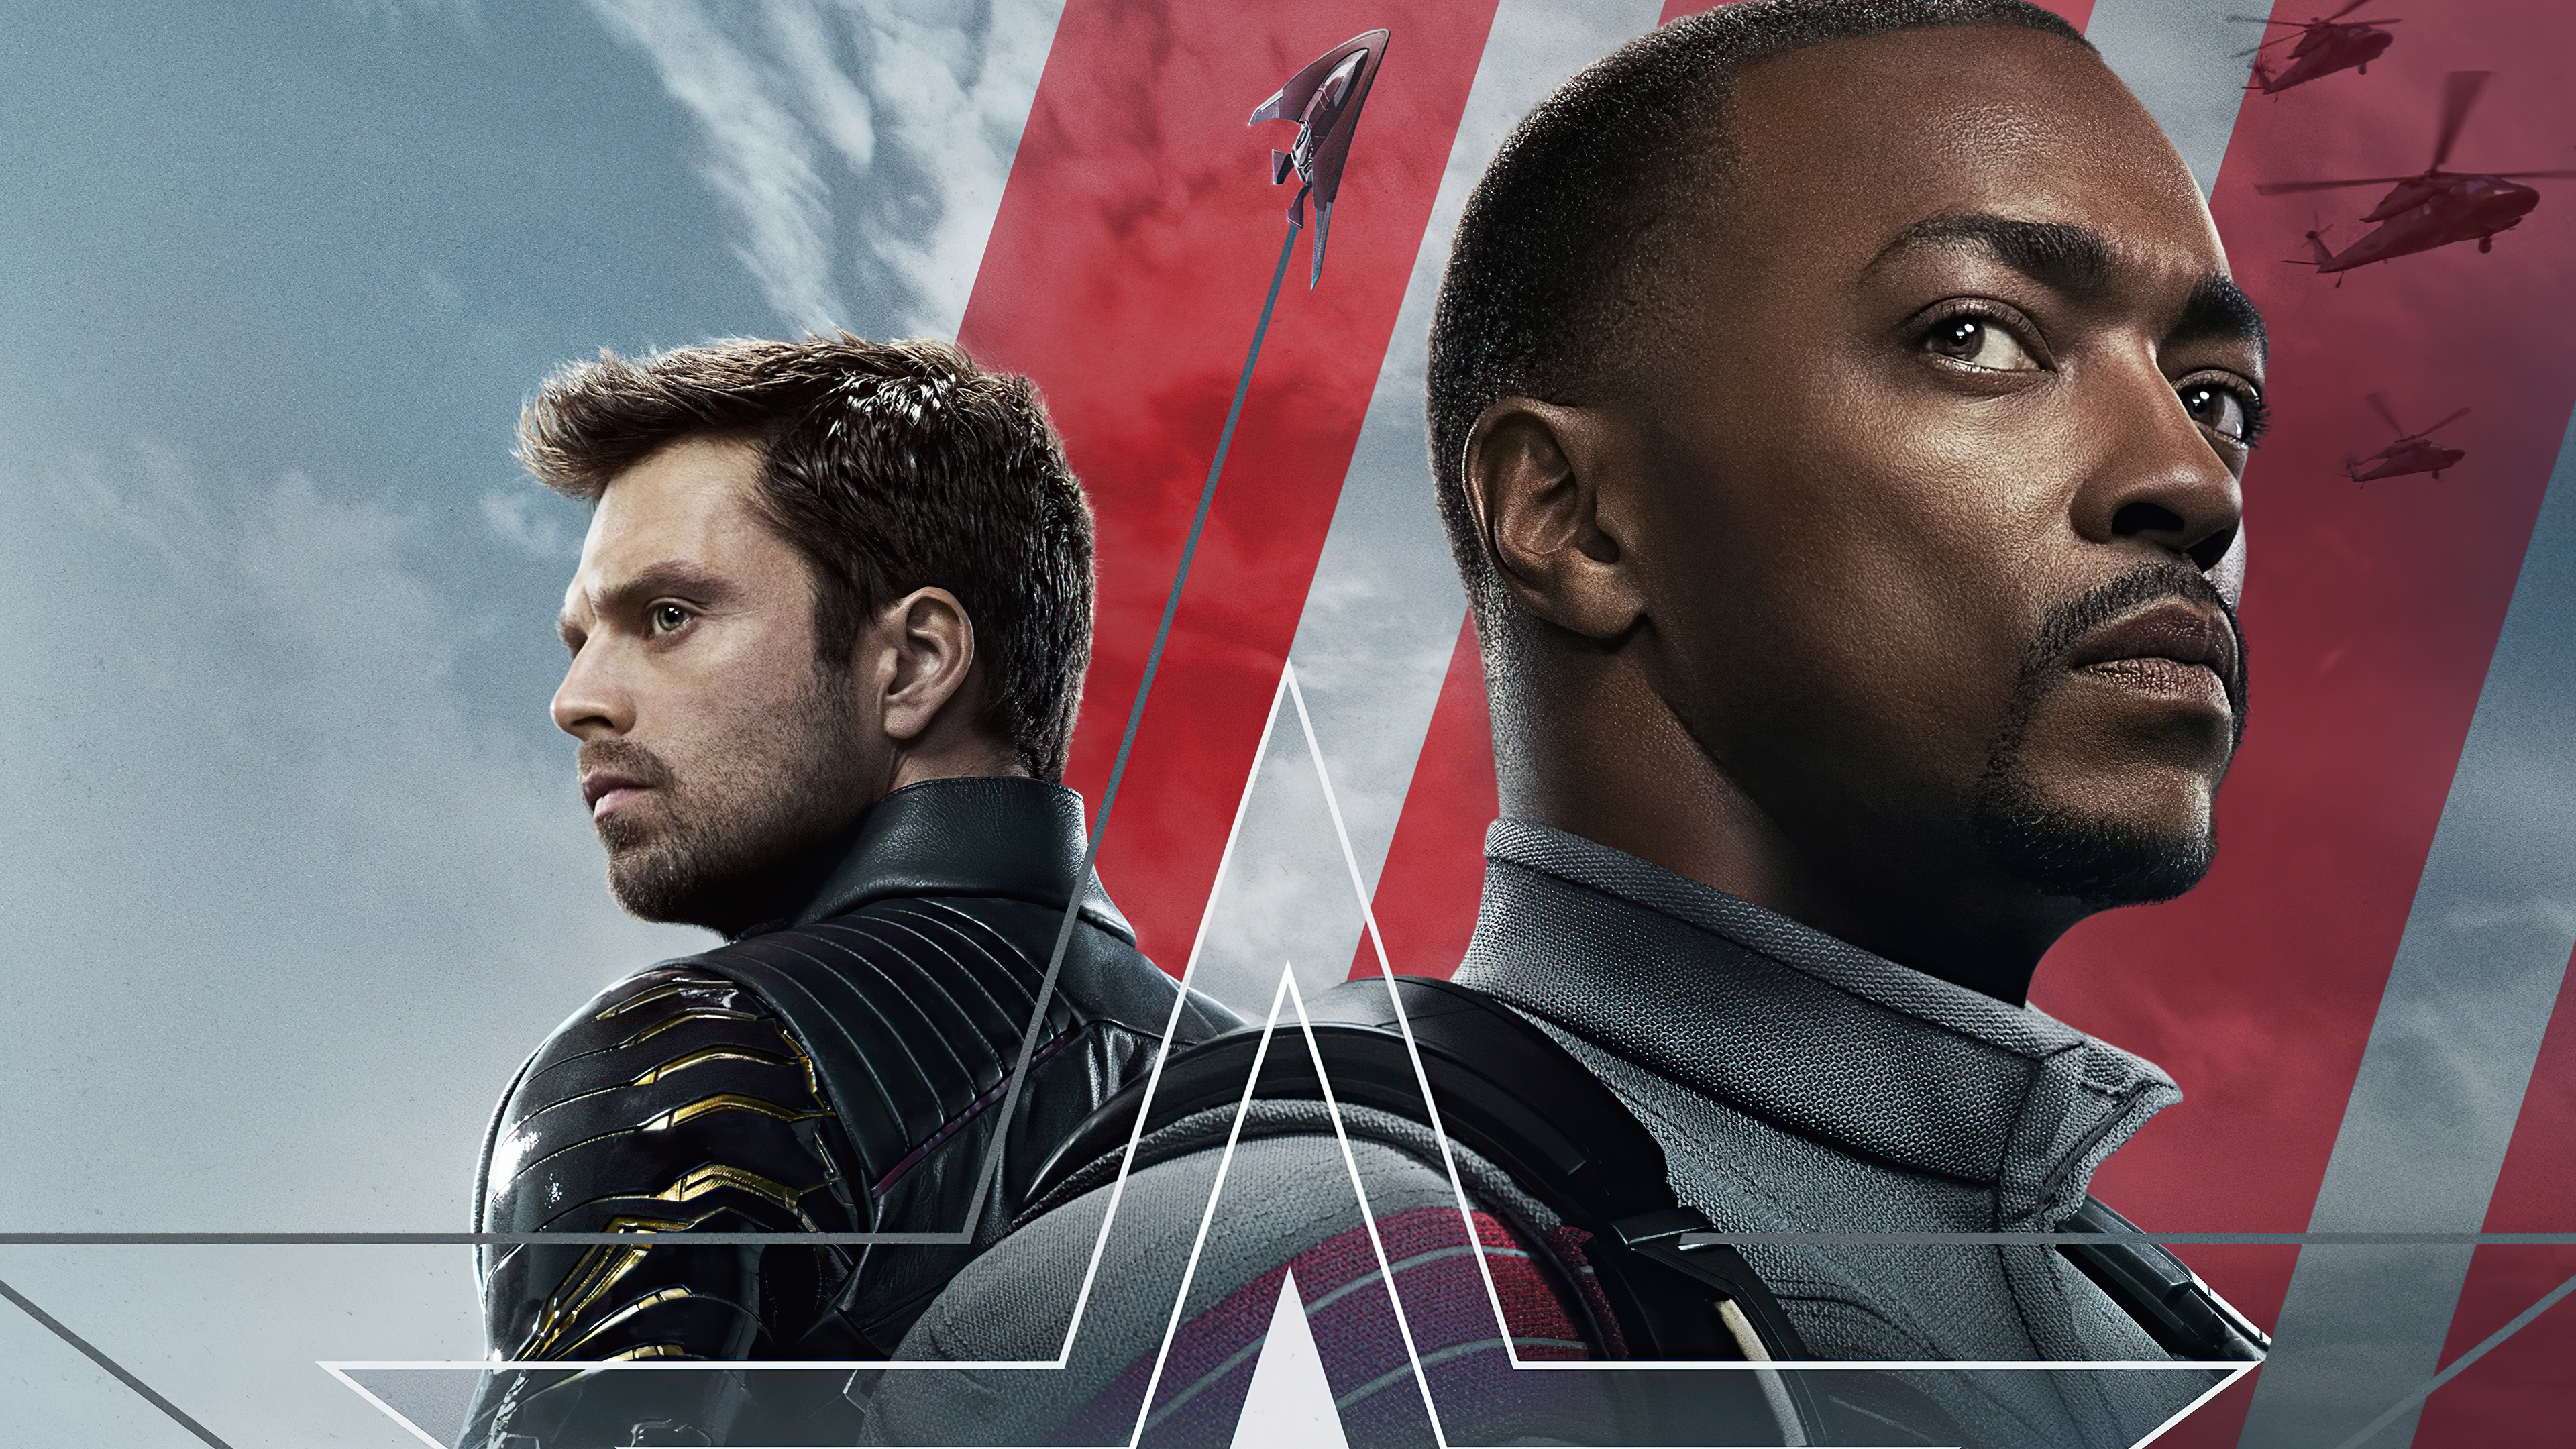 the falcon and the winter soldier 2021 4k 1615207226 - The Falcon And The Winter Soldier 2021 4k - The Falcon And The Winter Soldier 2021 4k wallpapers